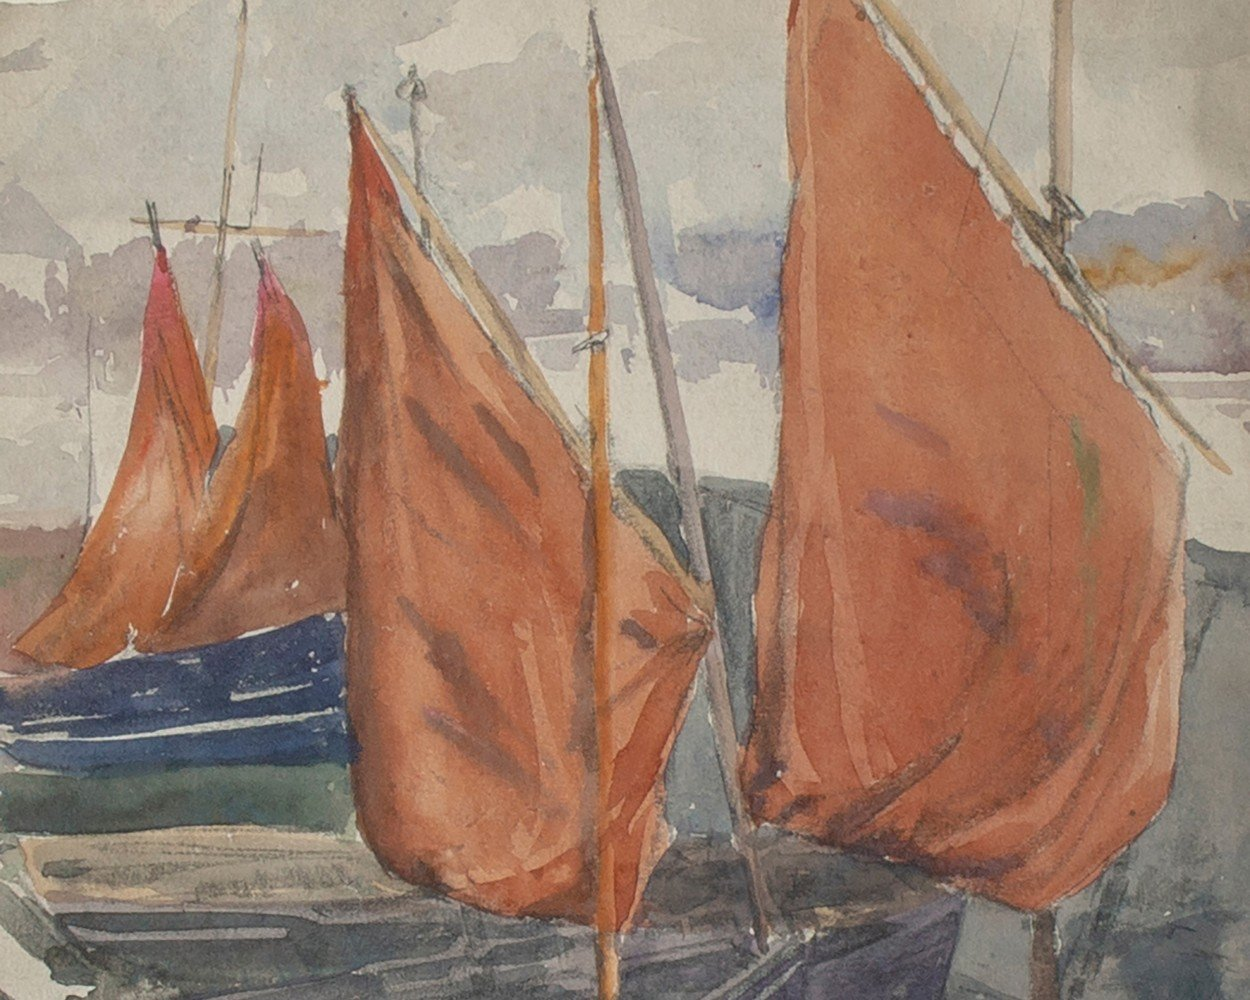 Boats at Concarneau, France by Frank Nelson Wilcox